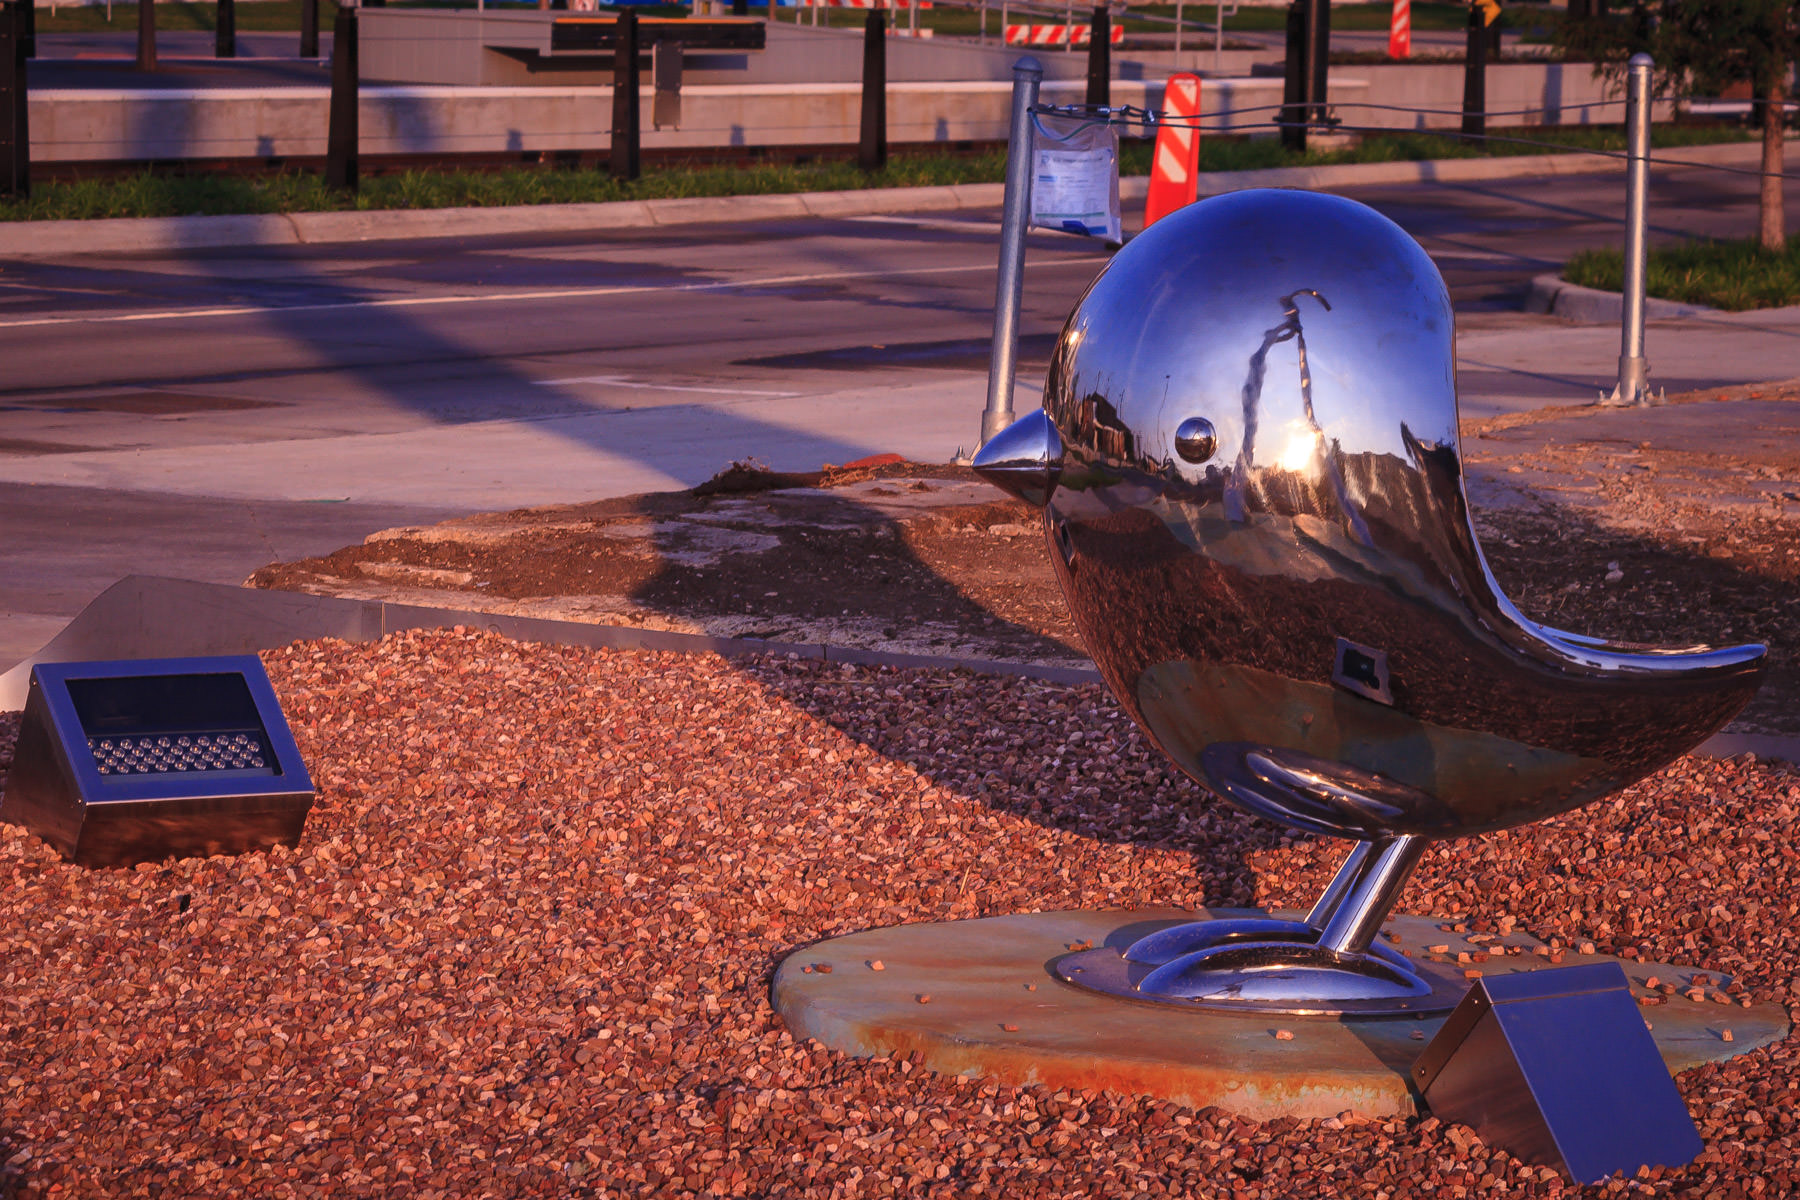 Dallas' Deep Ellum sculpture Traveling Man, is reflected in a companion bird.